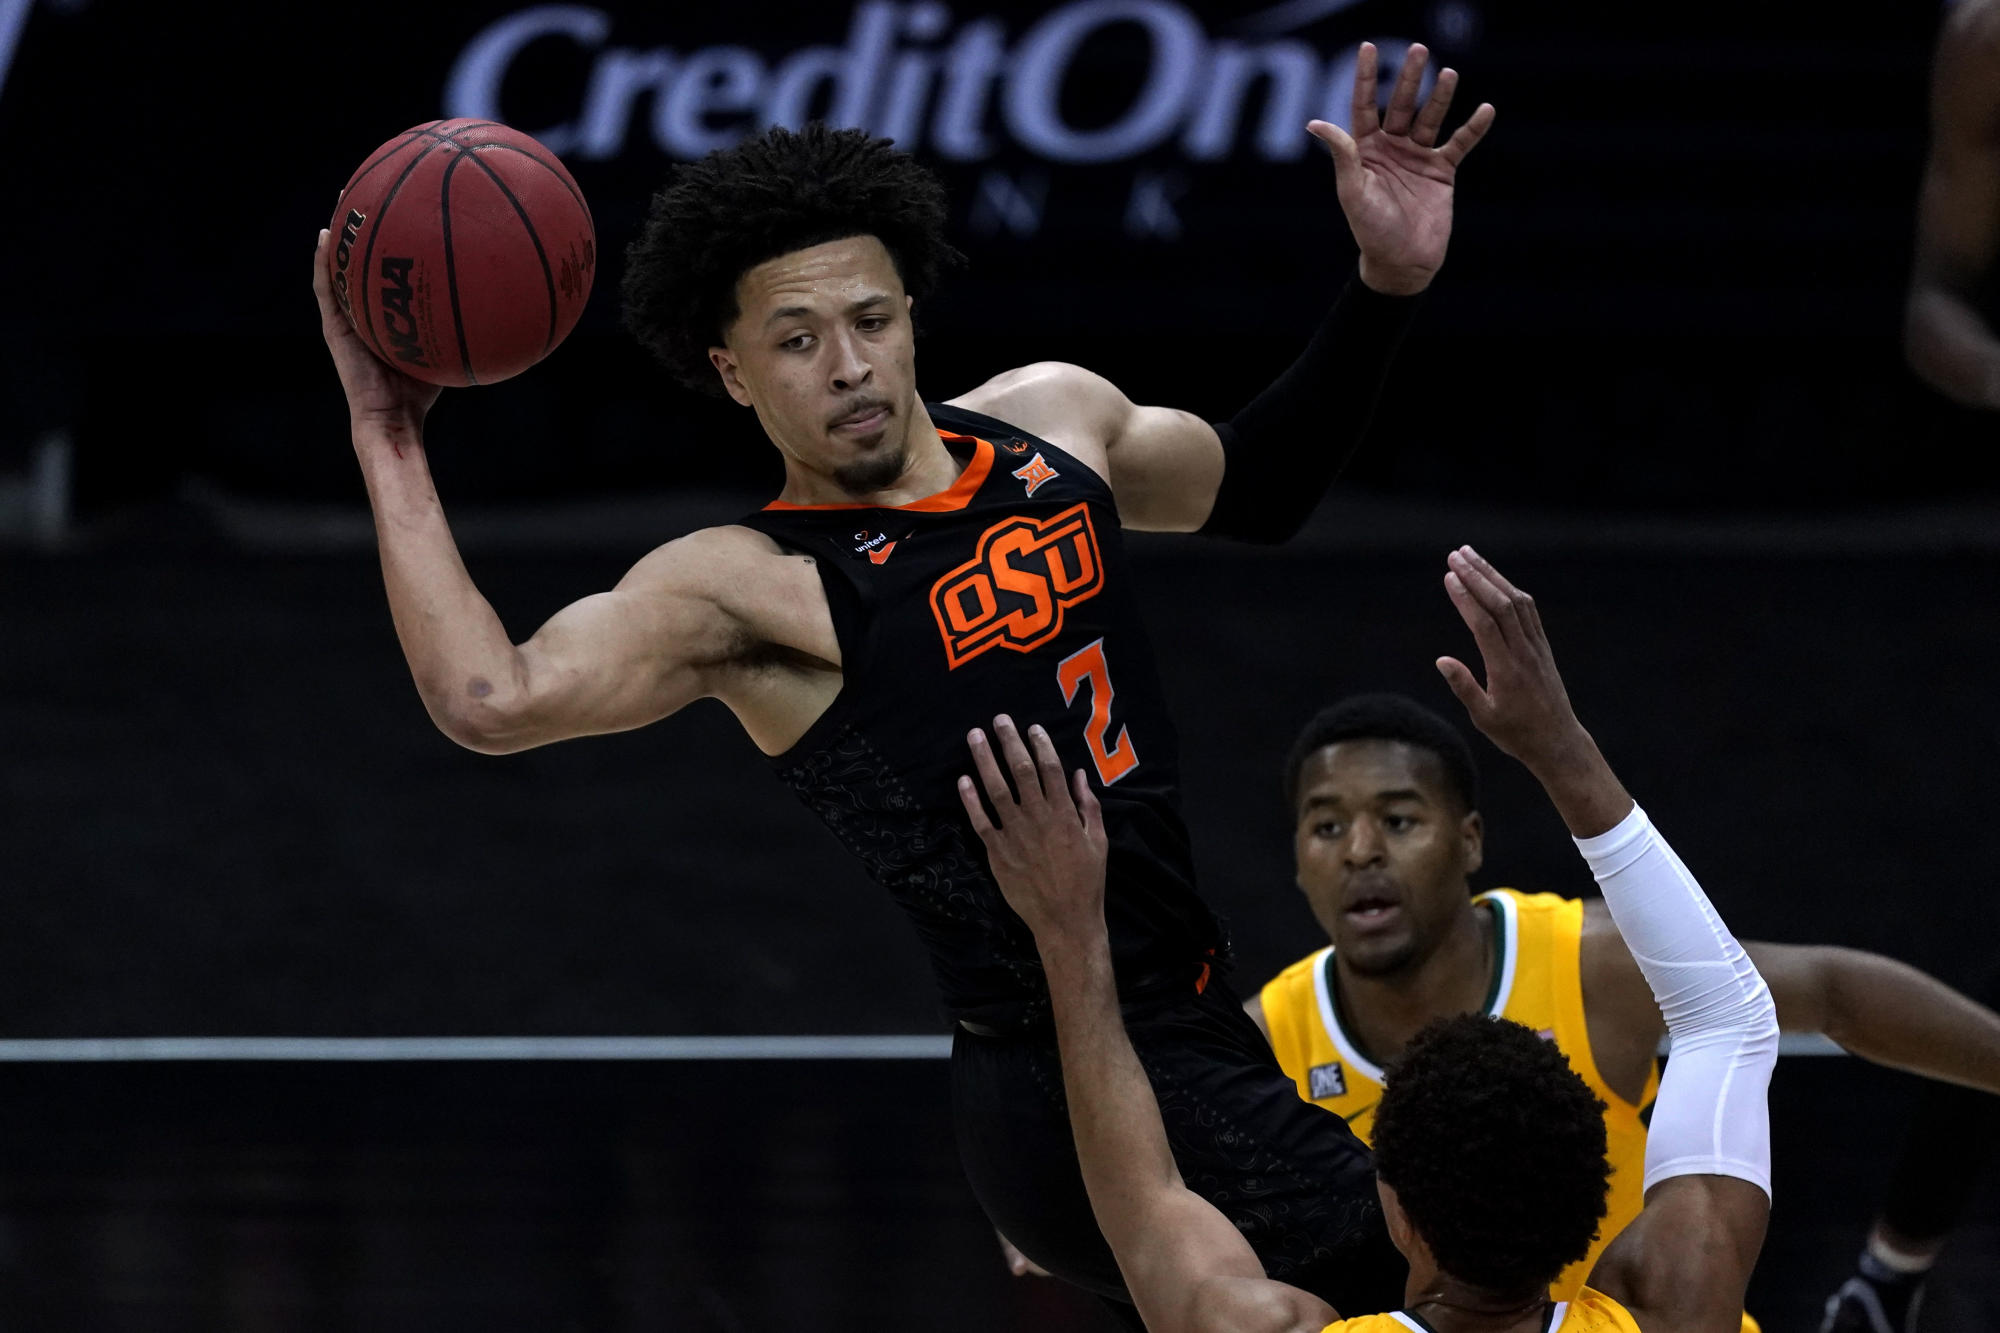 Cade Cunningham, Oklahoma State stun Baylor to reach Big 12 championship game - Yahoo Sports